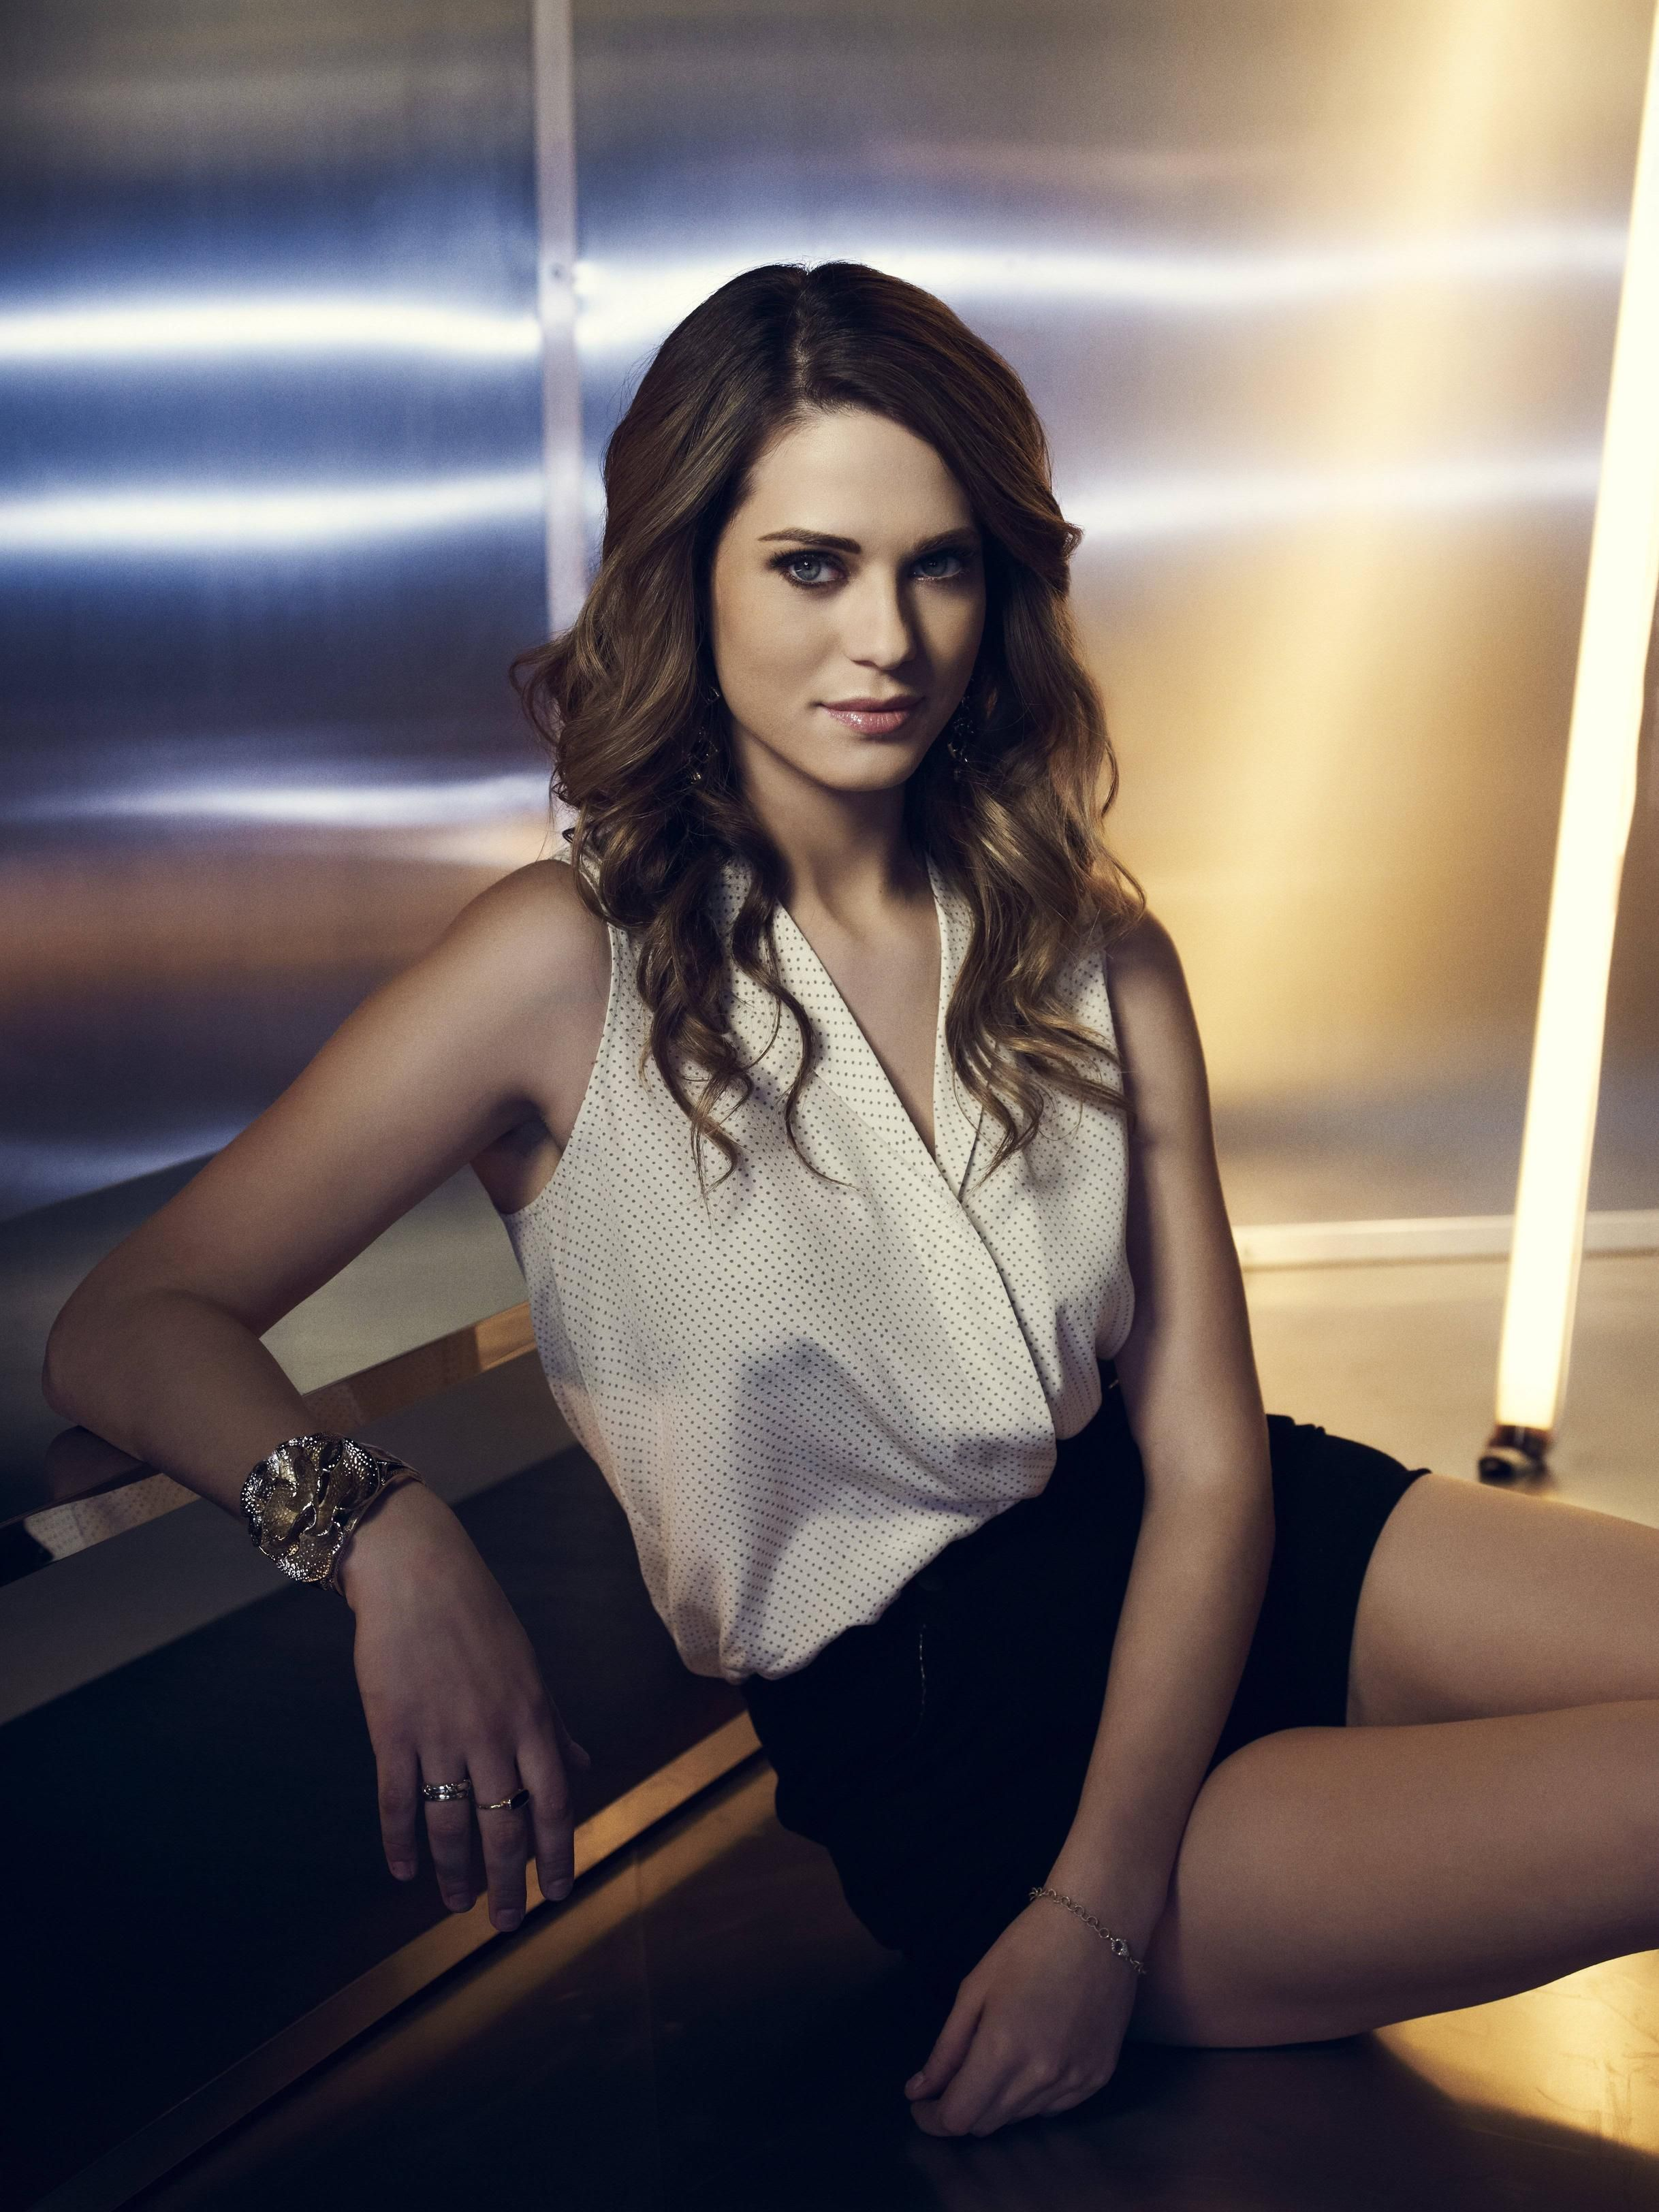 Celebrites Lyndsy Fonseca nude photos 2019